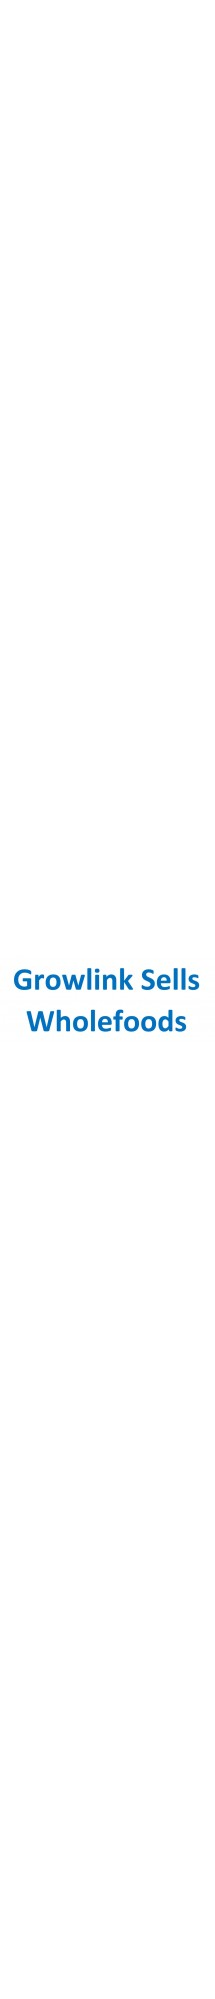 Growlink Sells Wholefoods